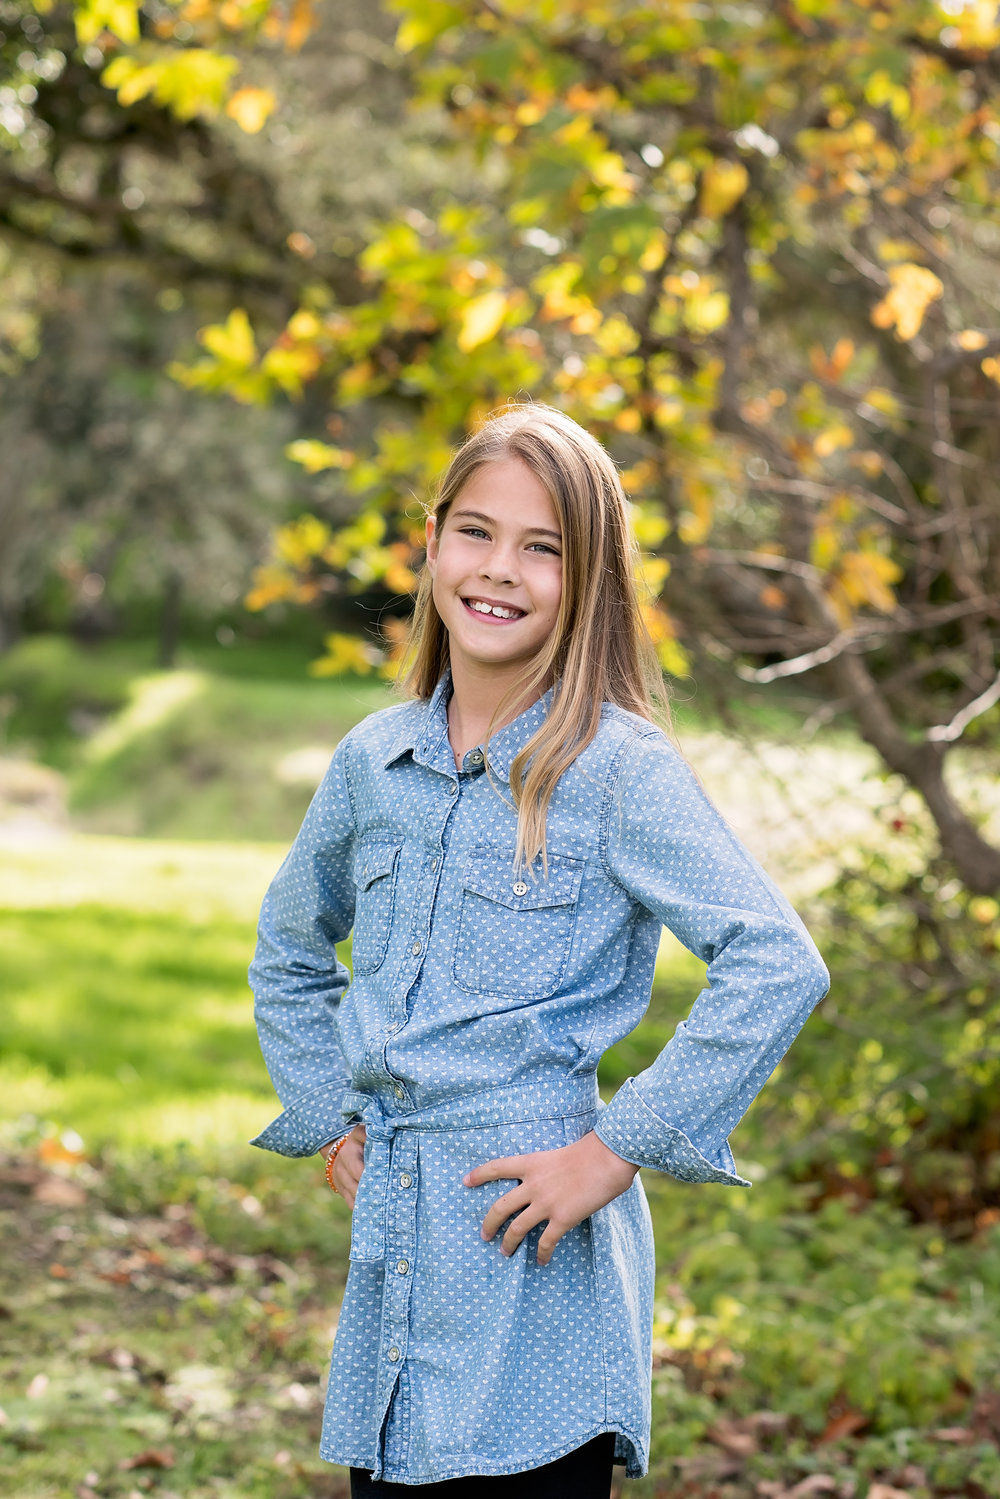 Central Coast Children's Photographer